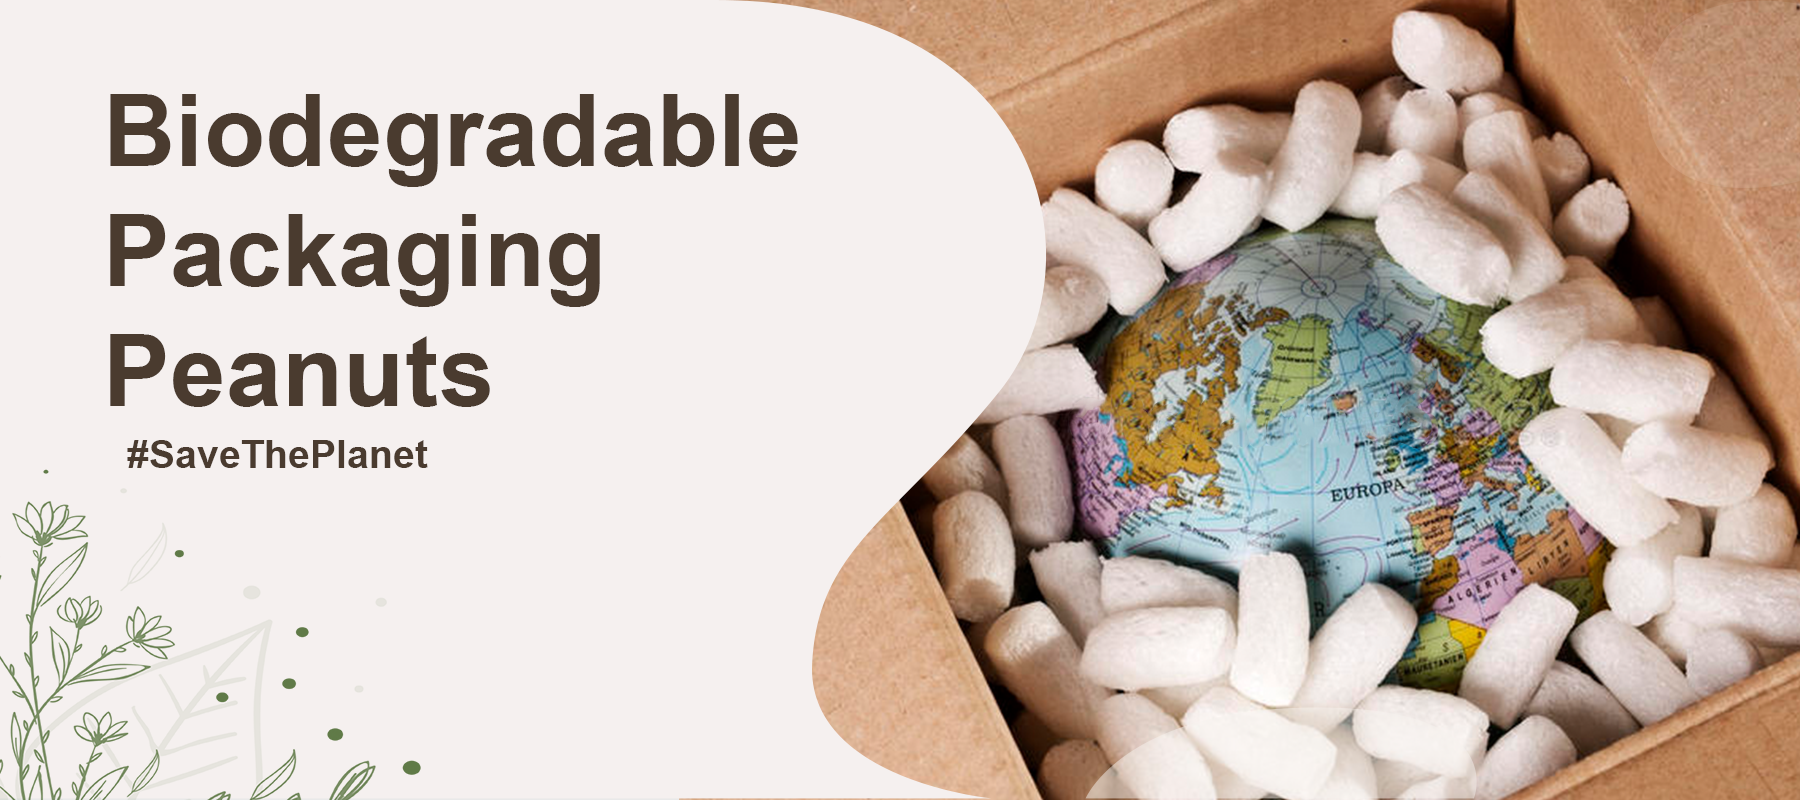 Bio degradable packing peanuts; save earth banner; light a candle